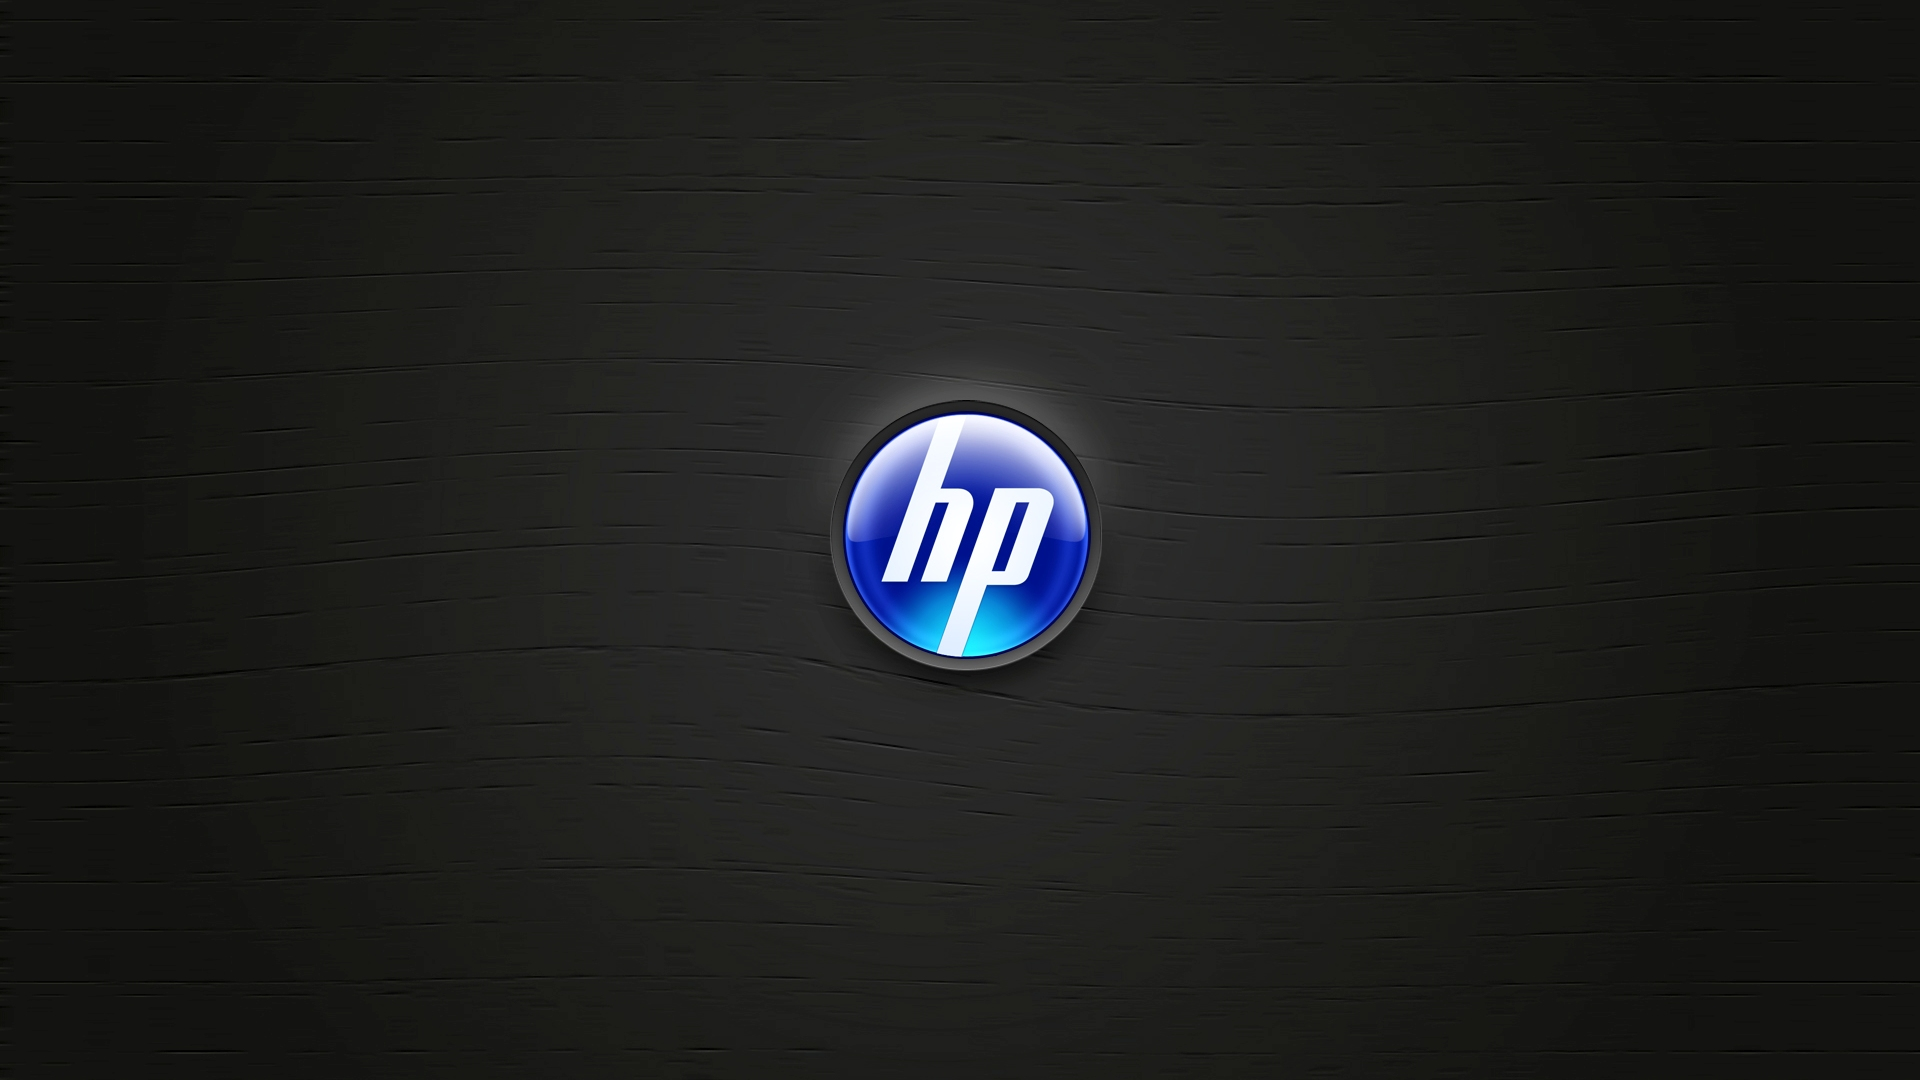 hp wallpaper | 1920x1080 | #42249